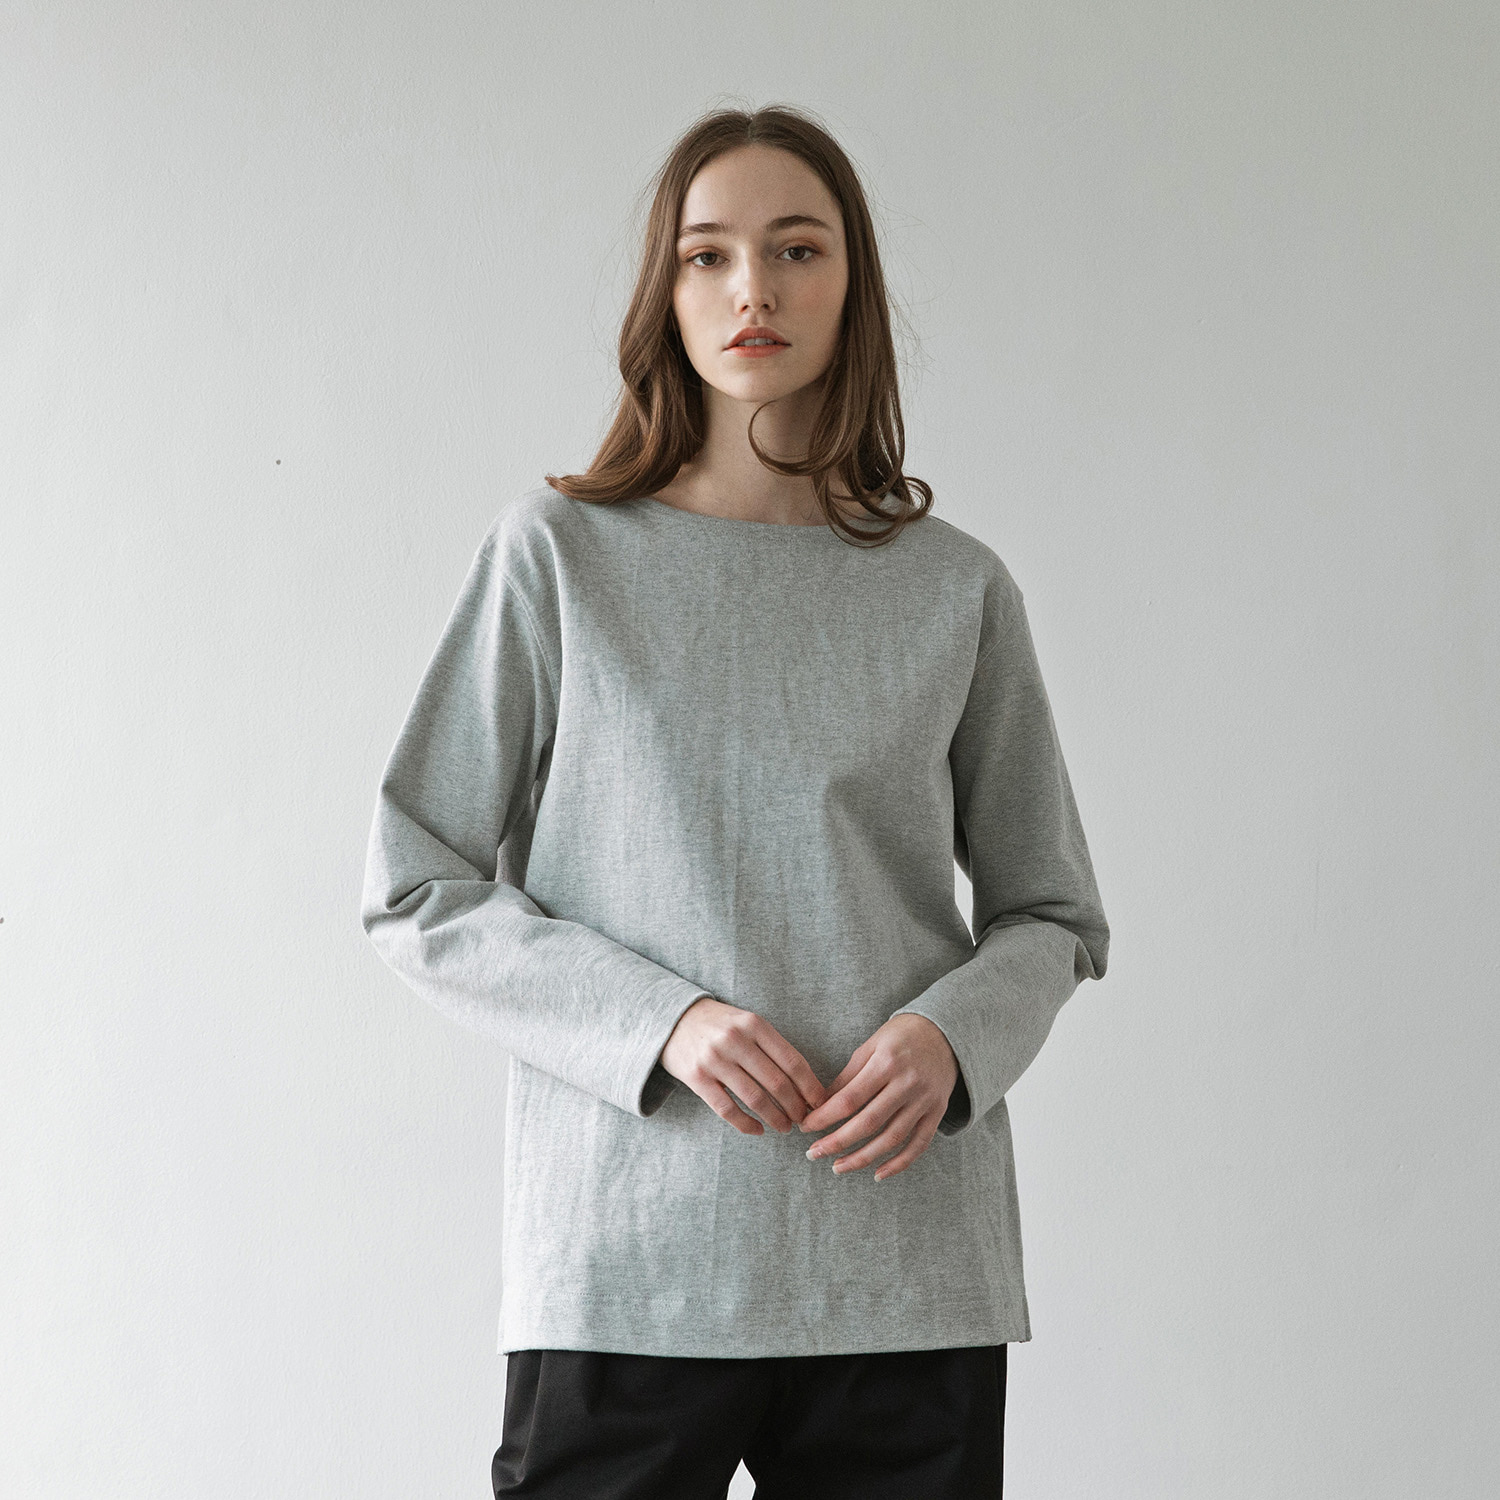 Women Upright Basqueshirt (Heather Gray)